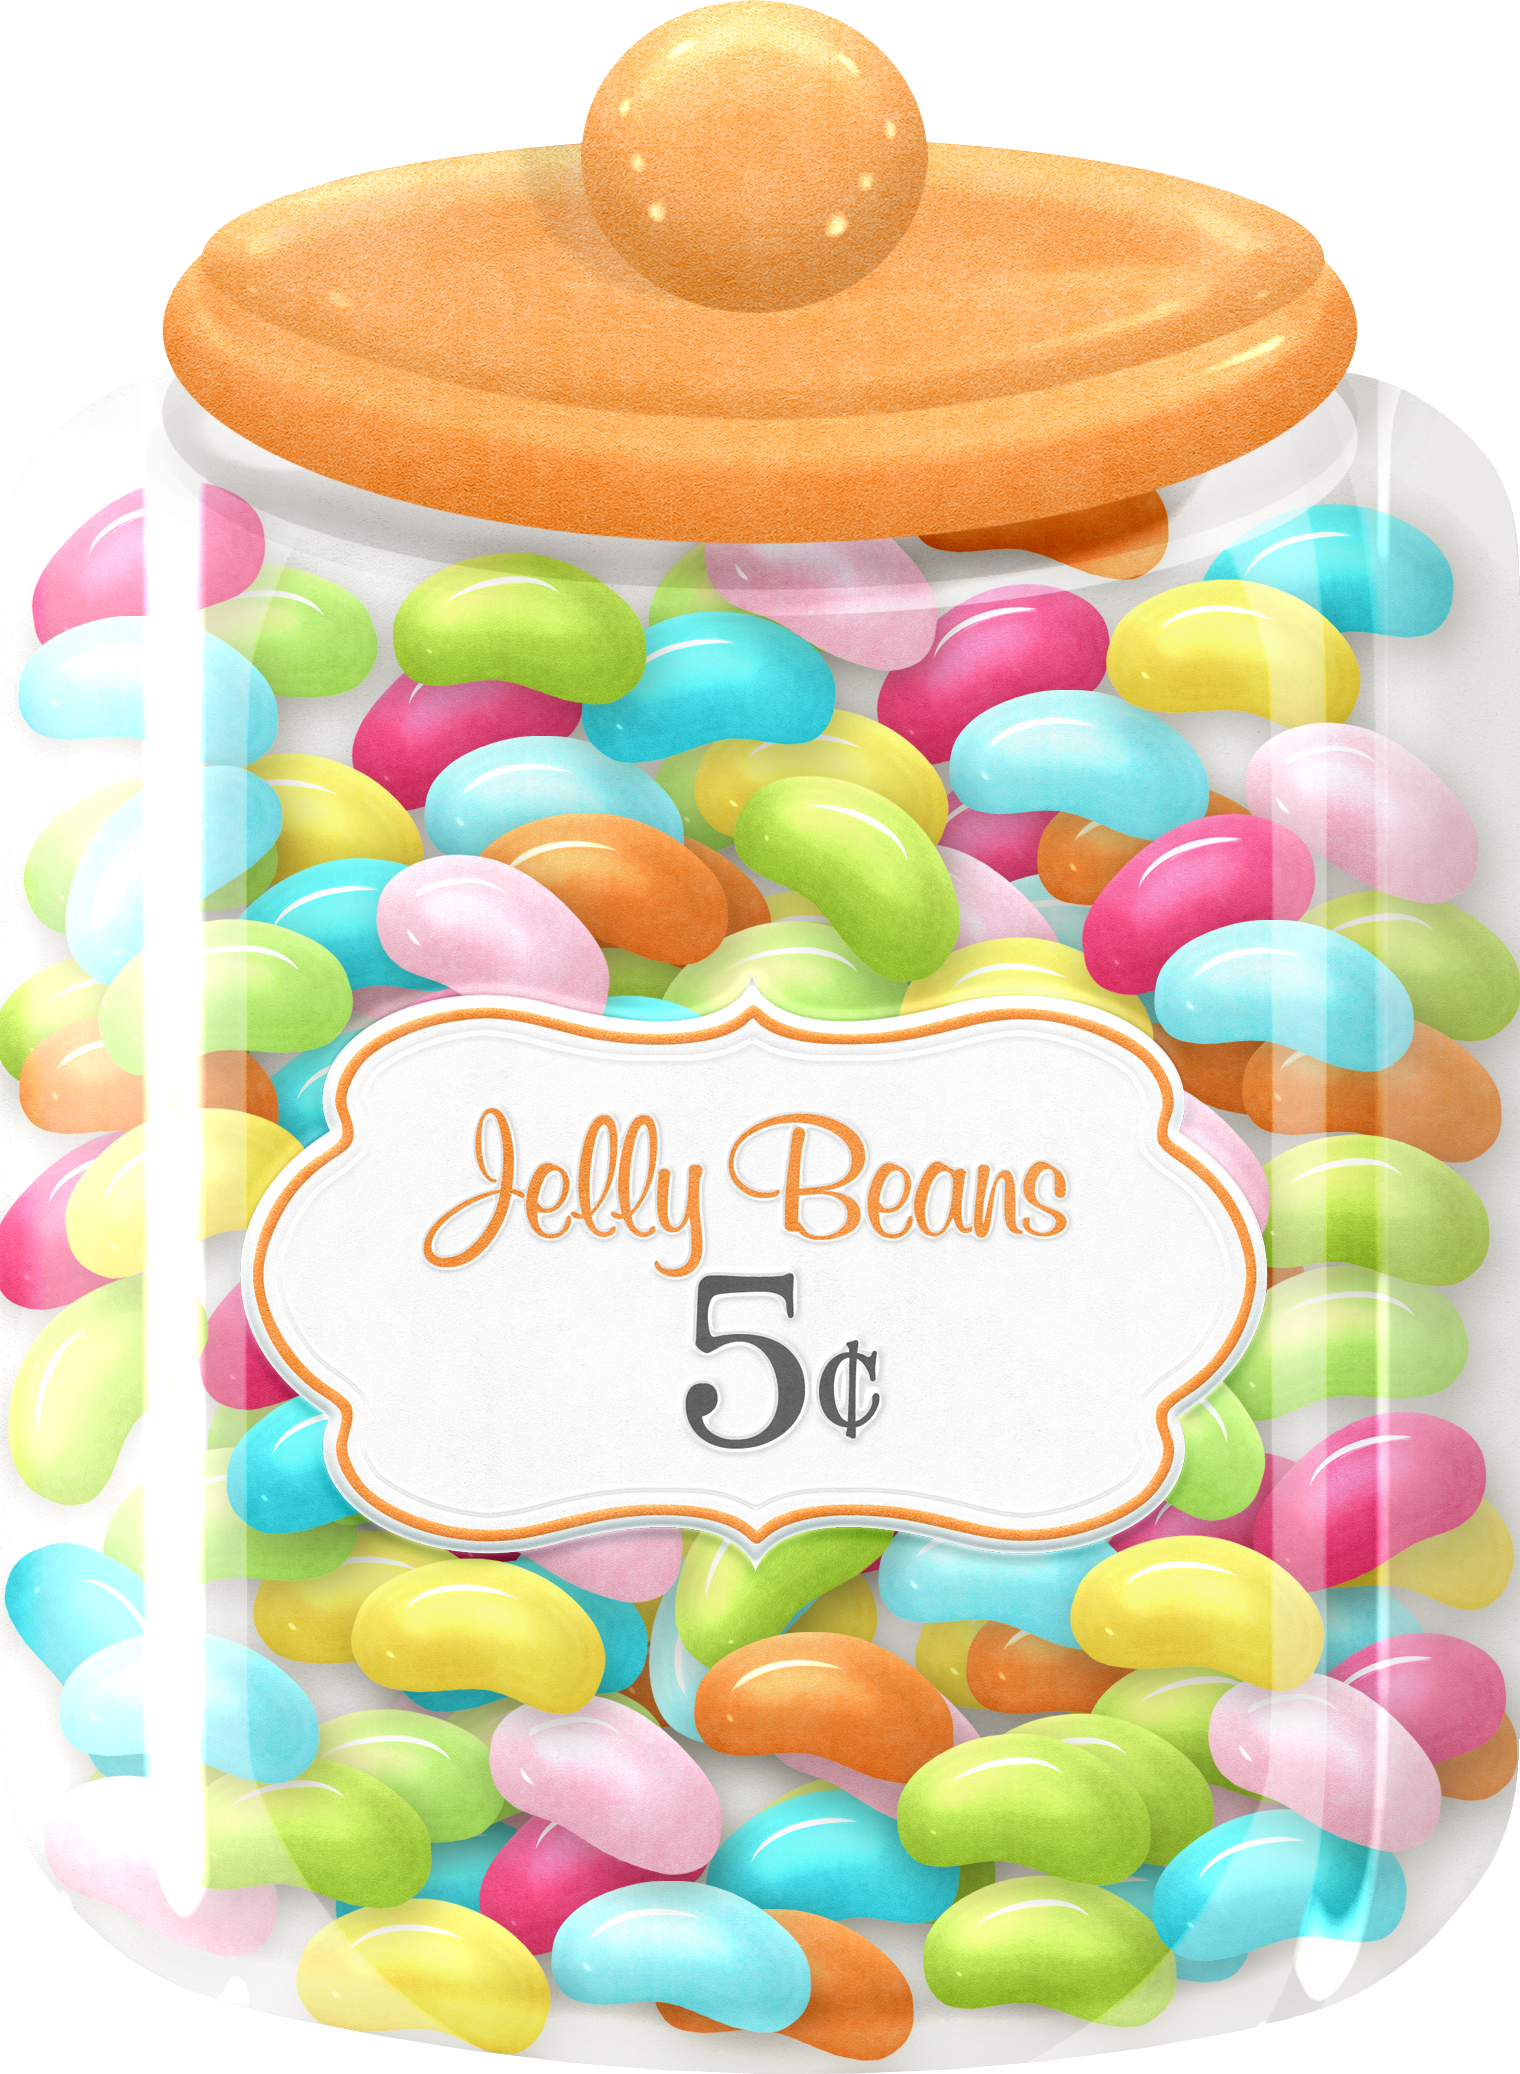 desserts clipart candy